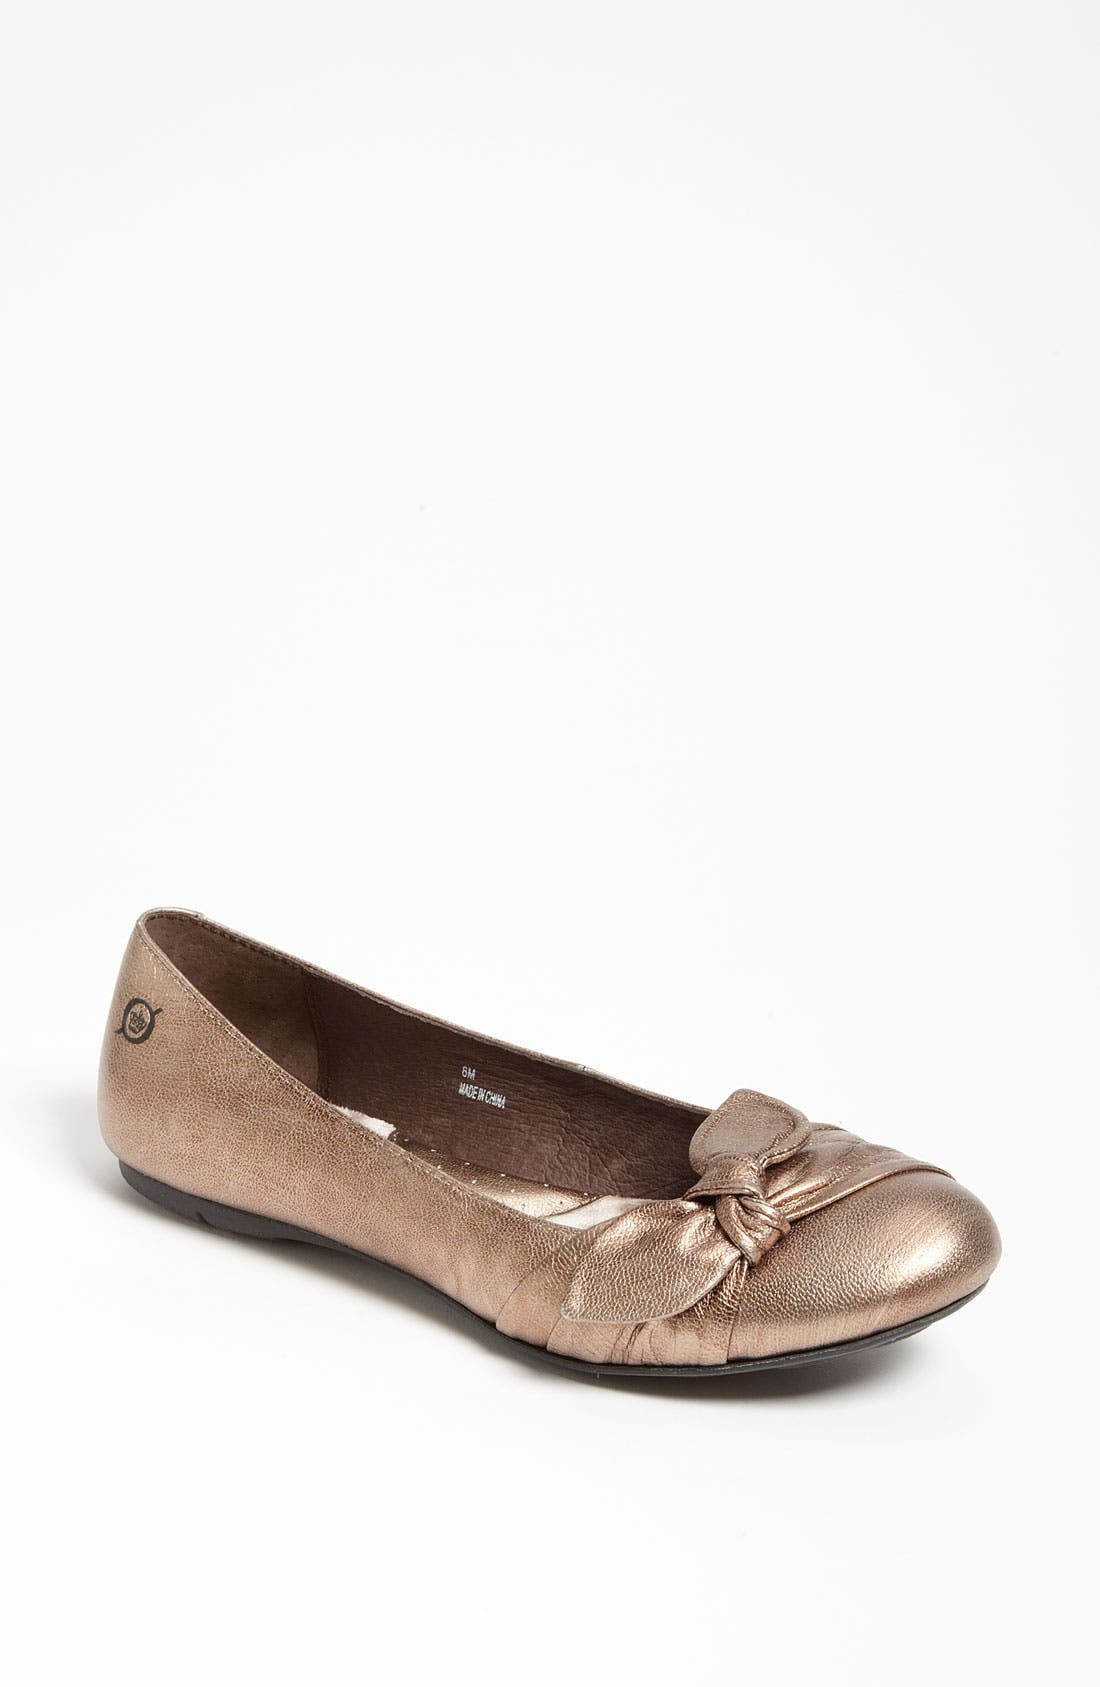 Main Image - Børn 'Molly' Flat (Online Exclusive)